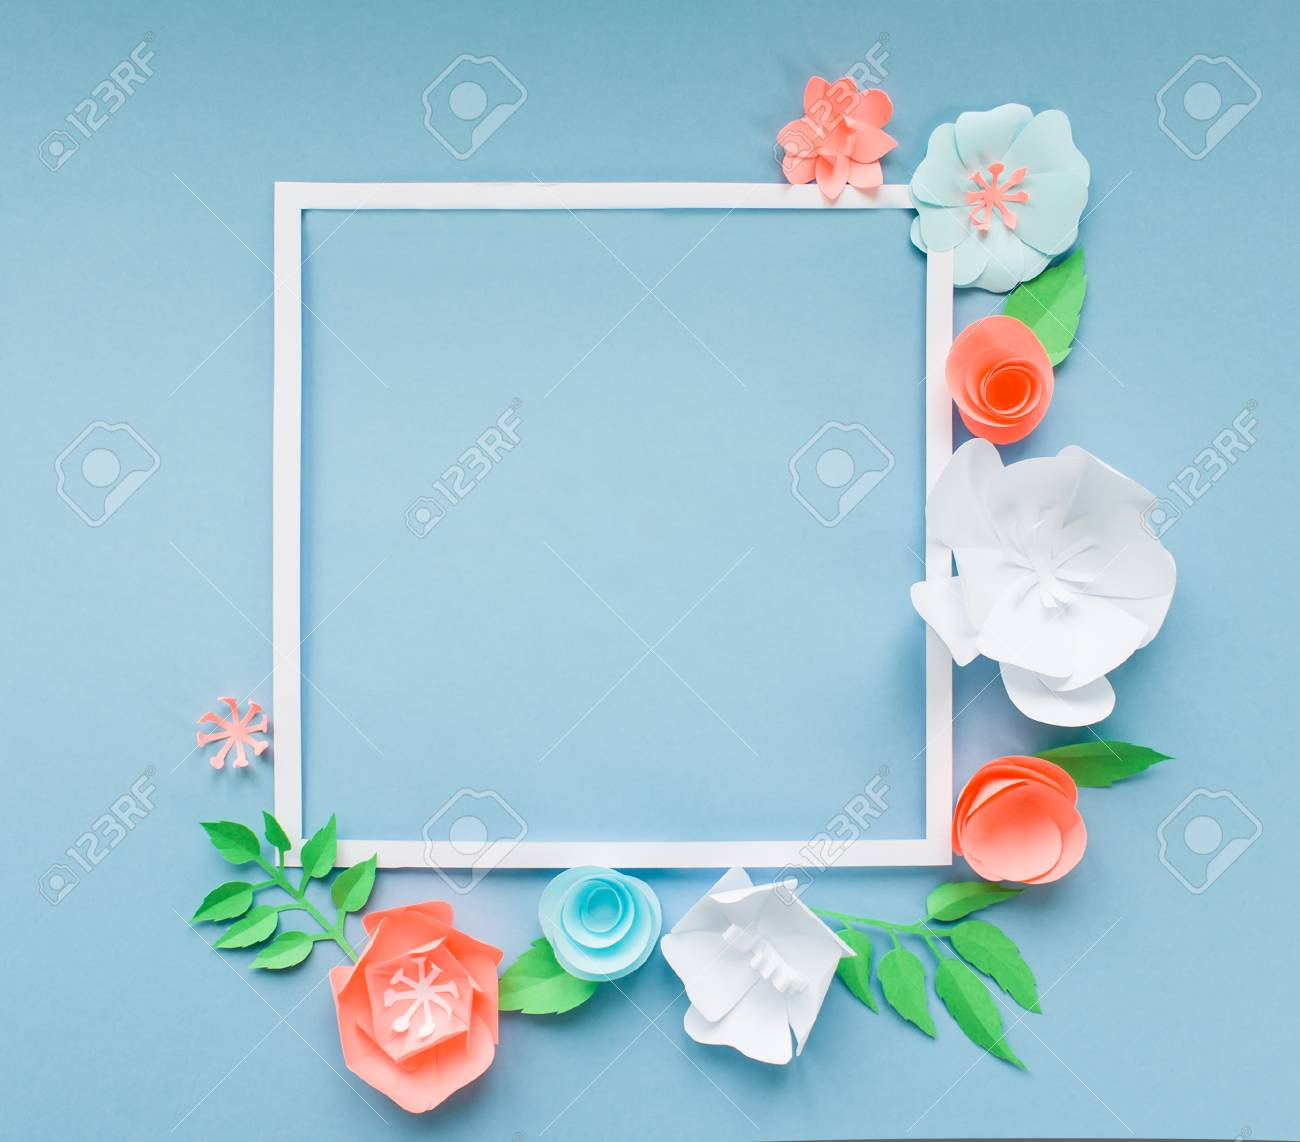 Square Frame With Color Paper Flowers On The Blue Background